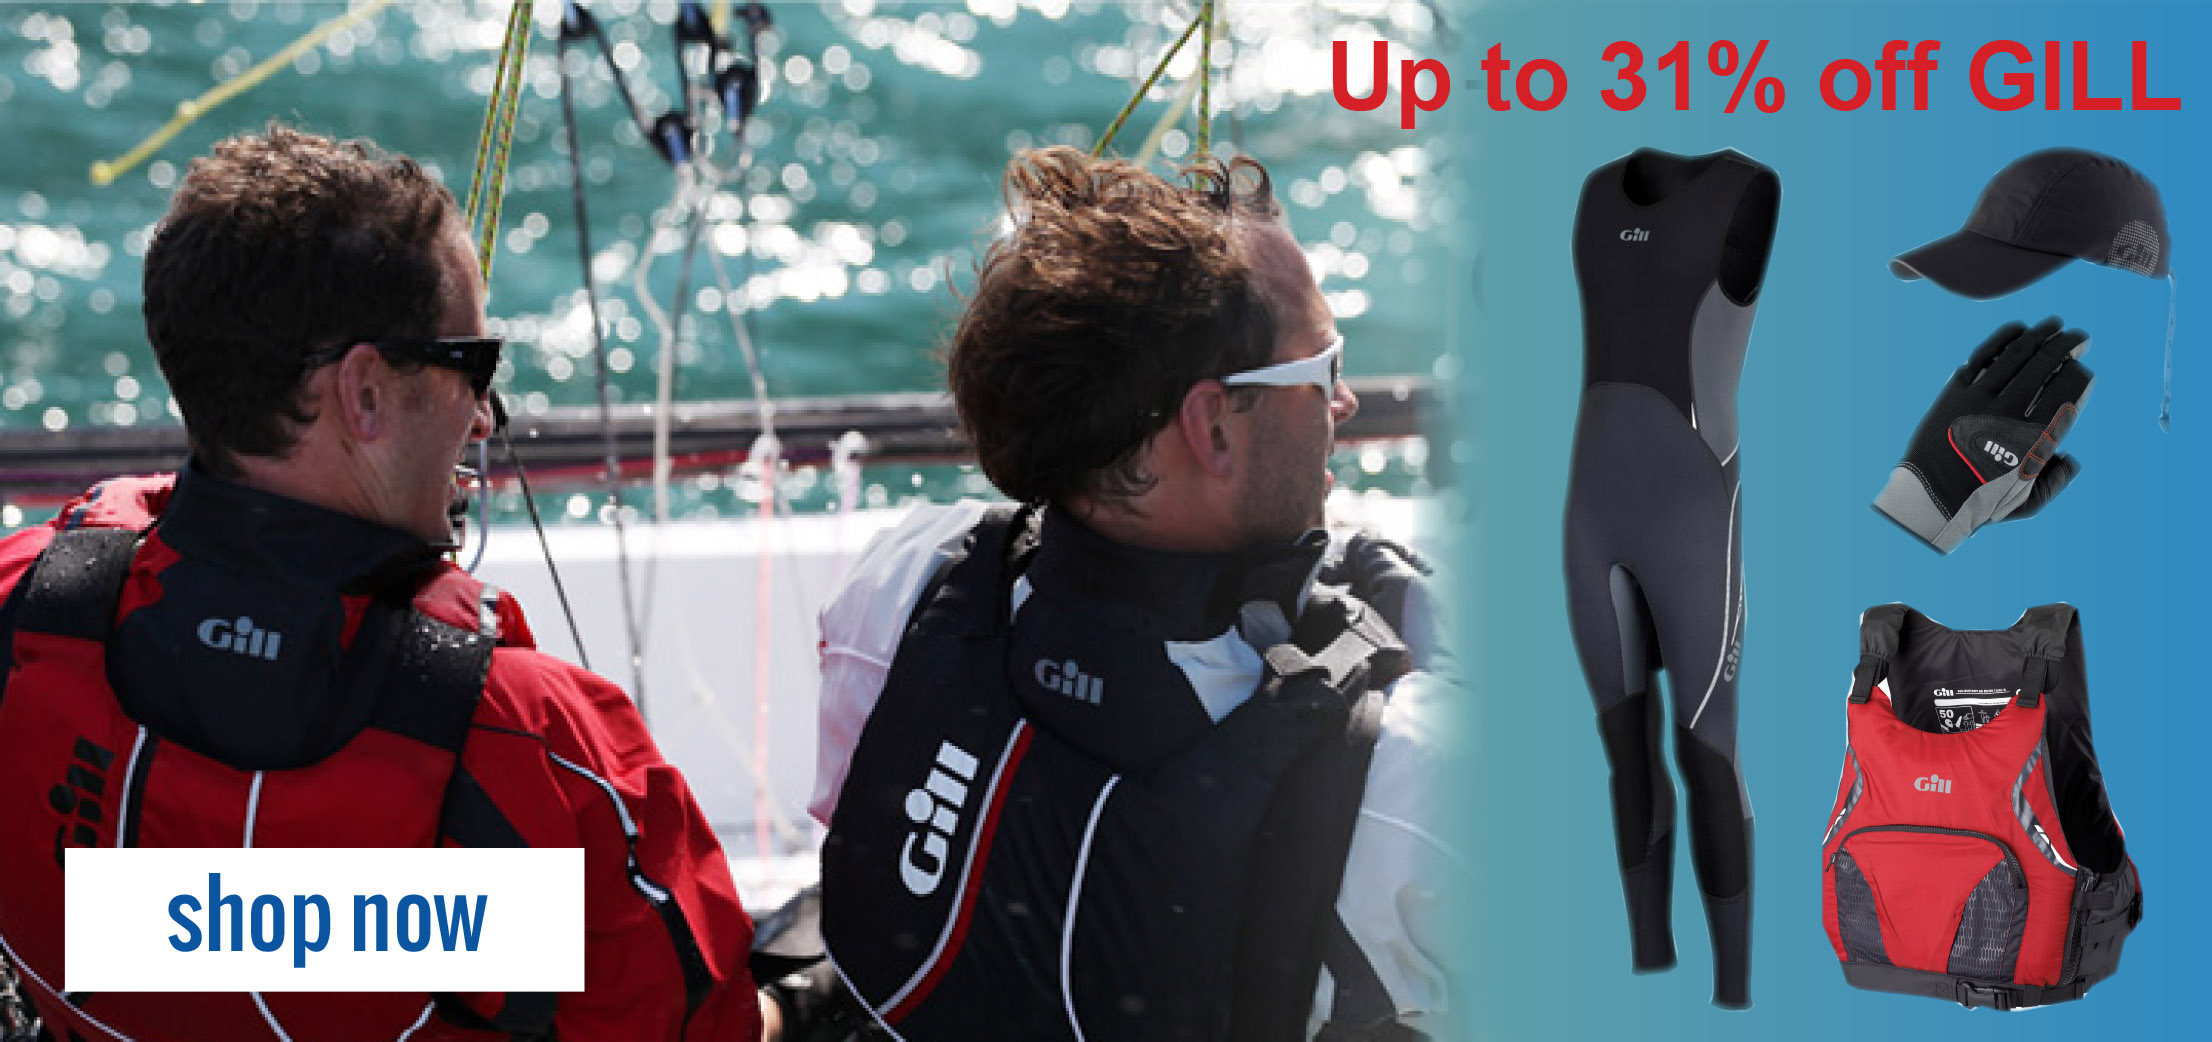 Gill Clearance Sale | Up to 33% off selected Gill Sailing Gear